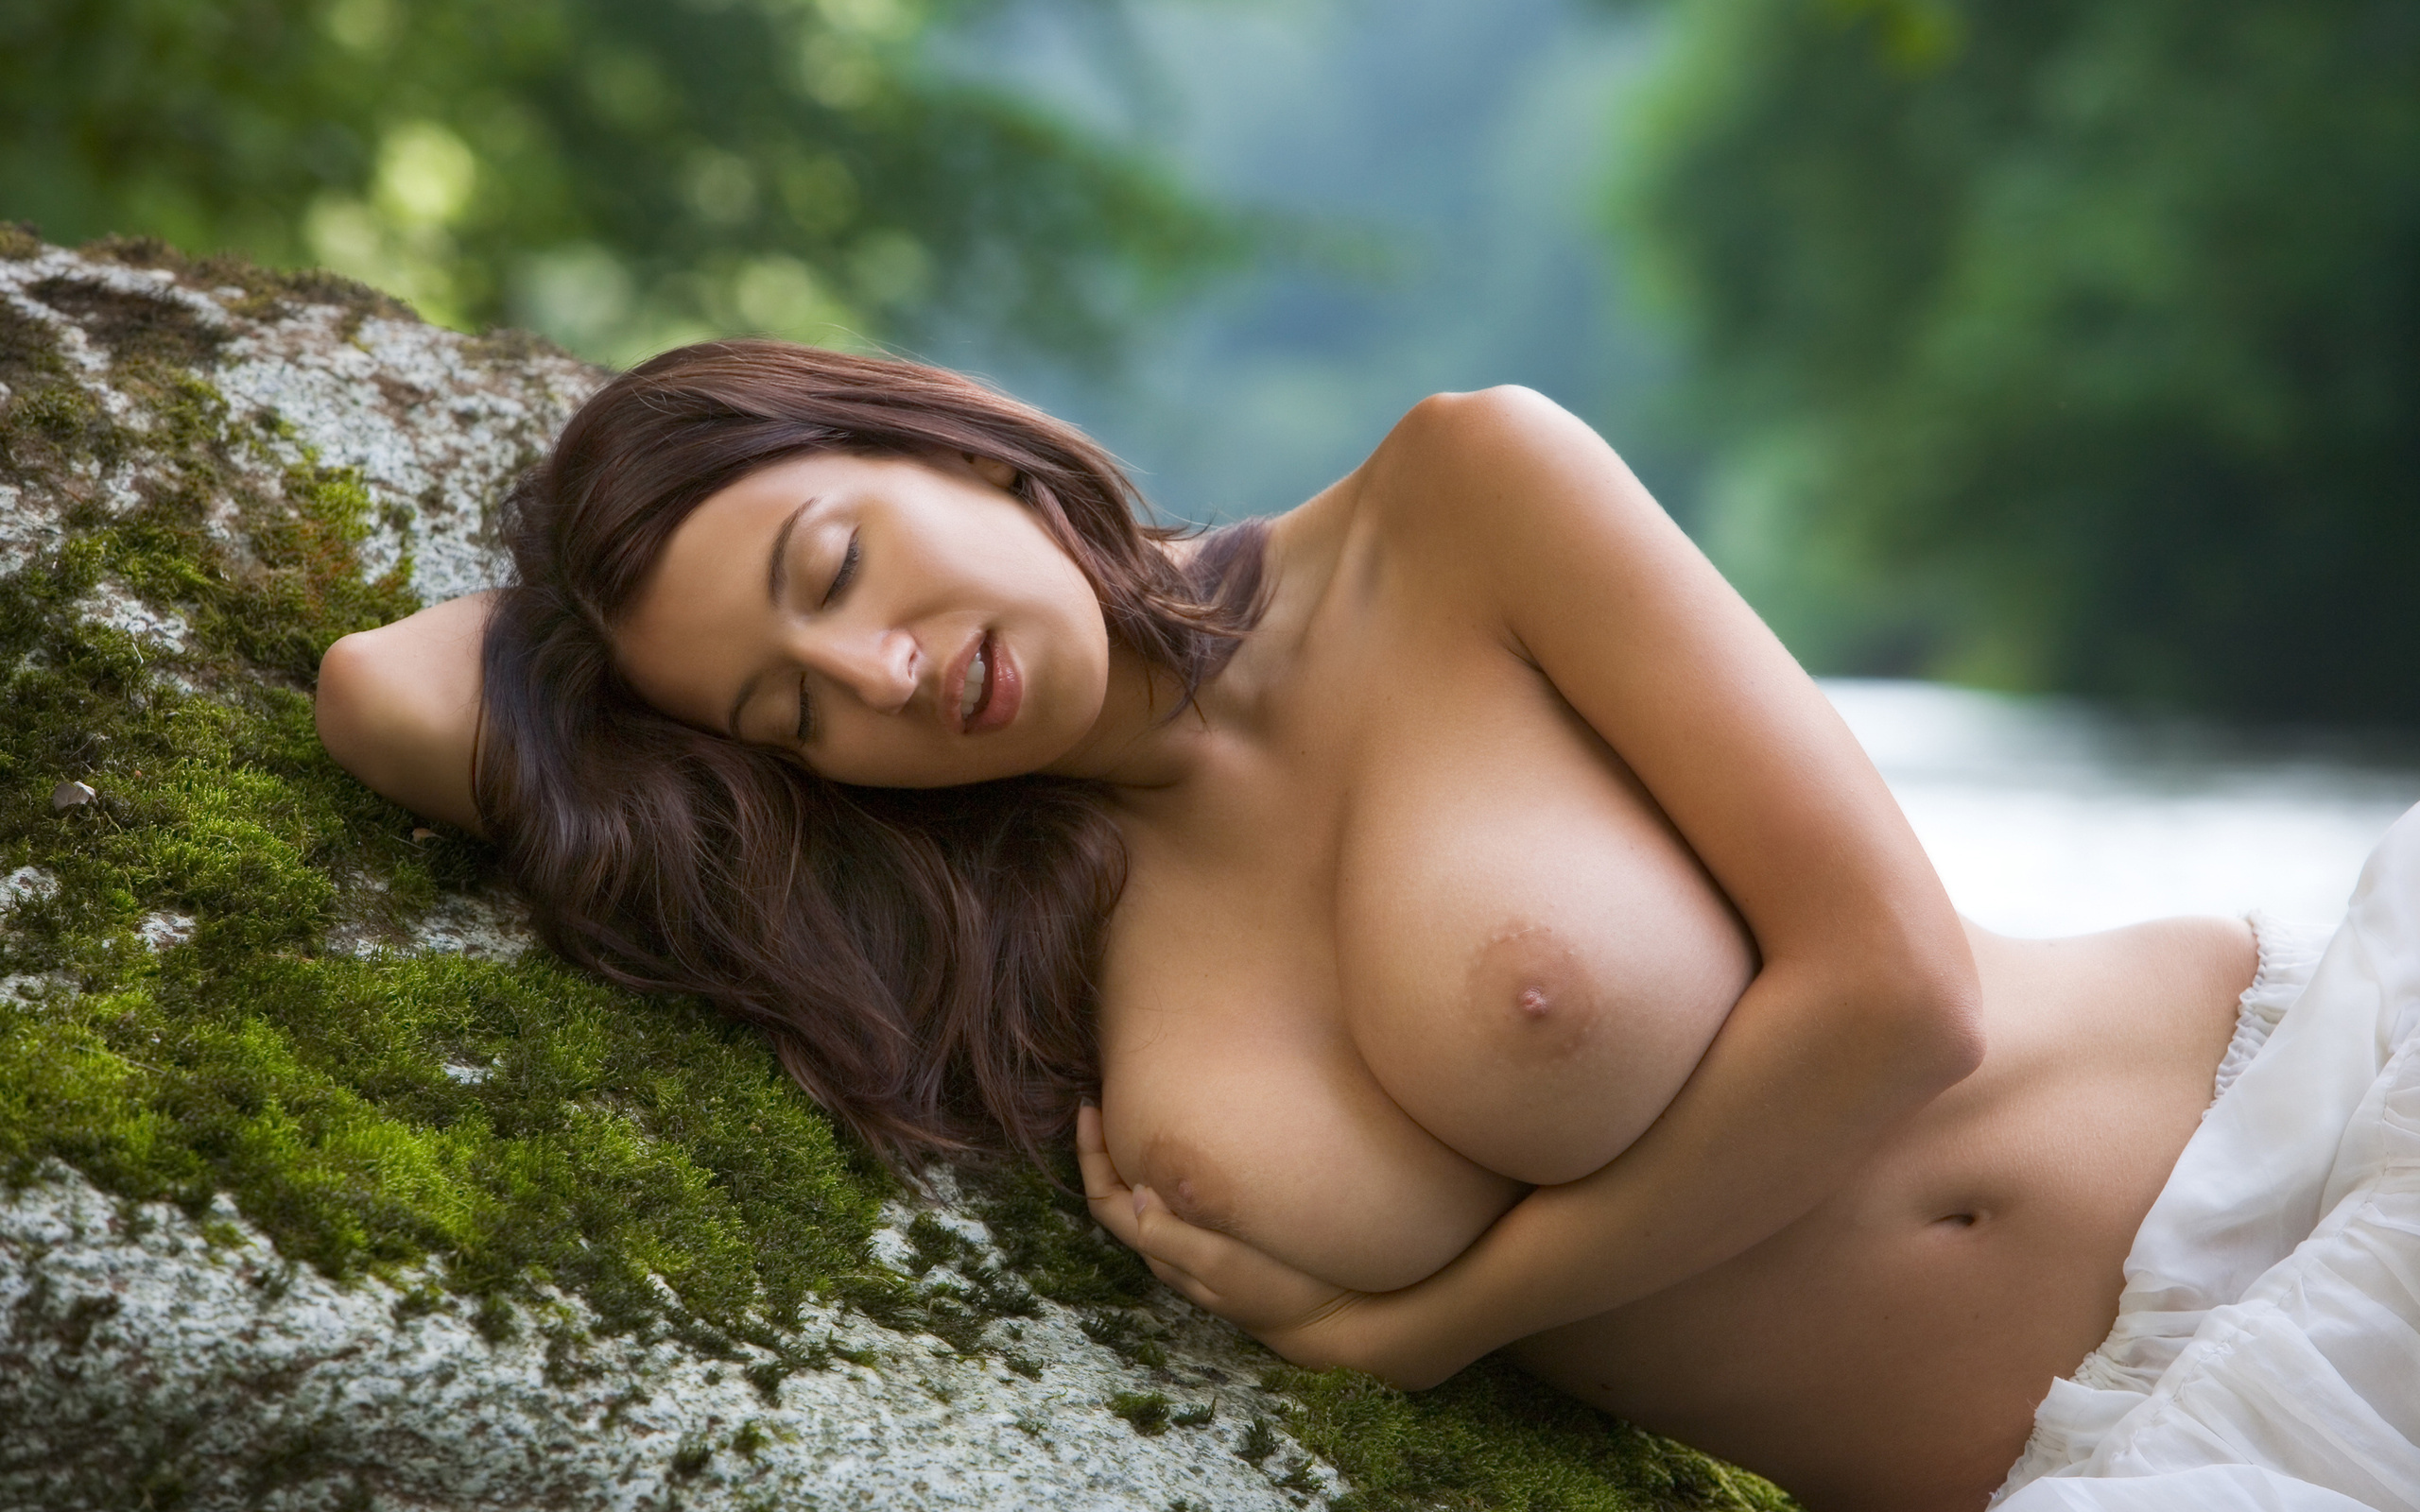 Natural big breast, wrestling nude xxx pic